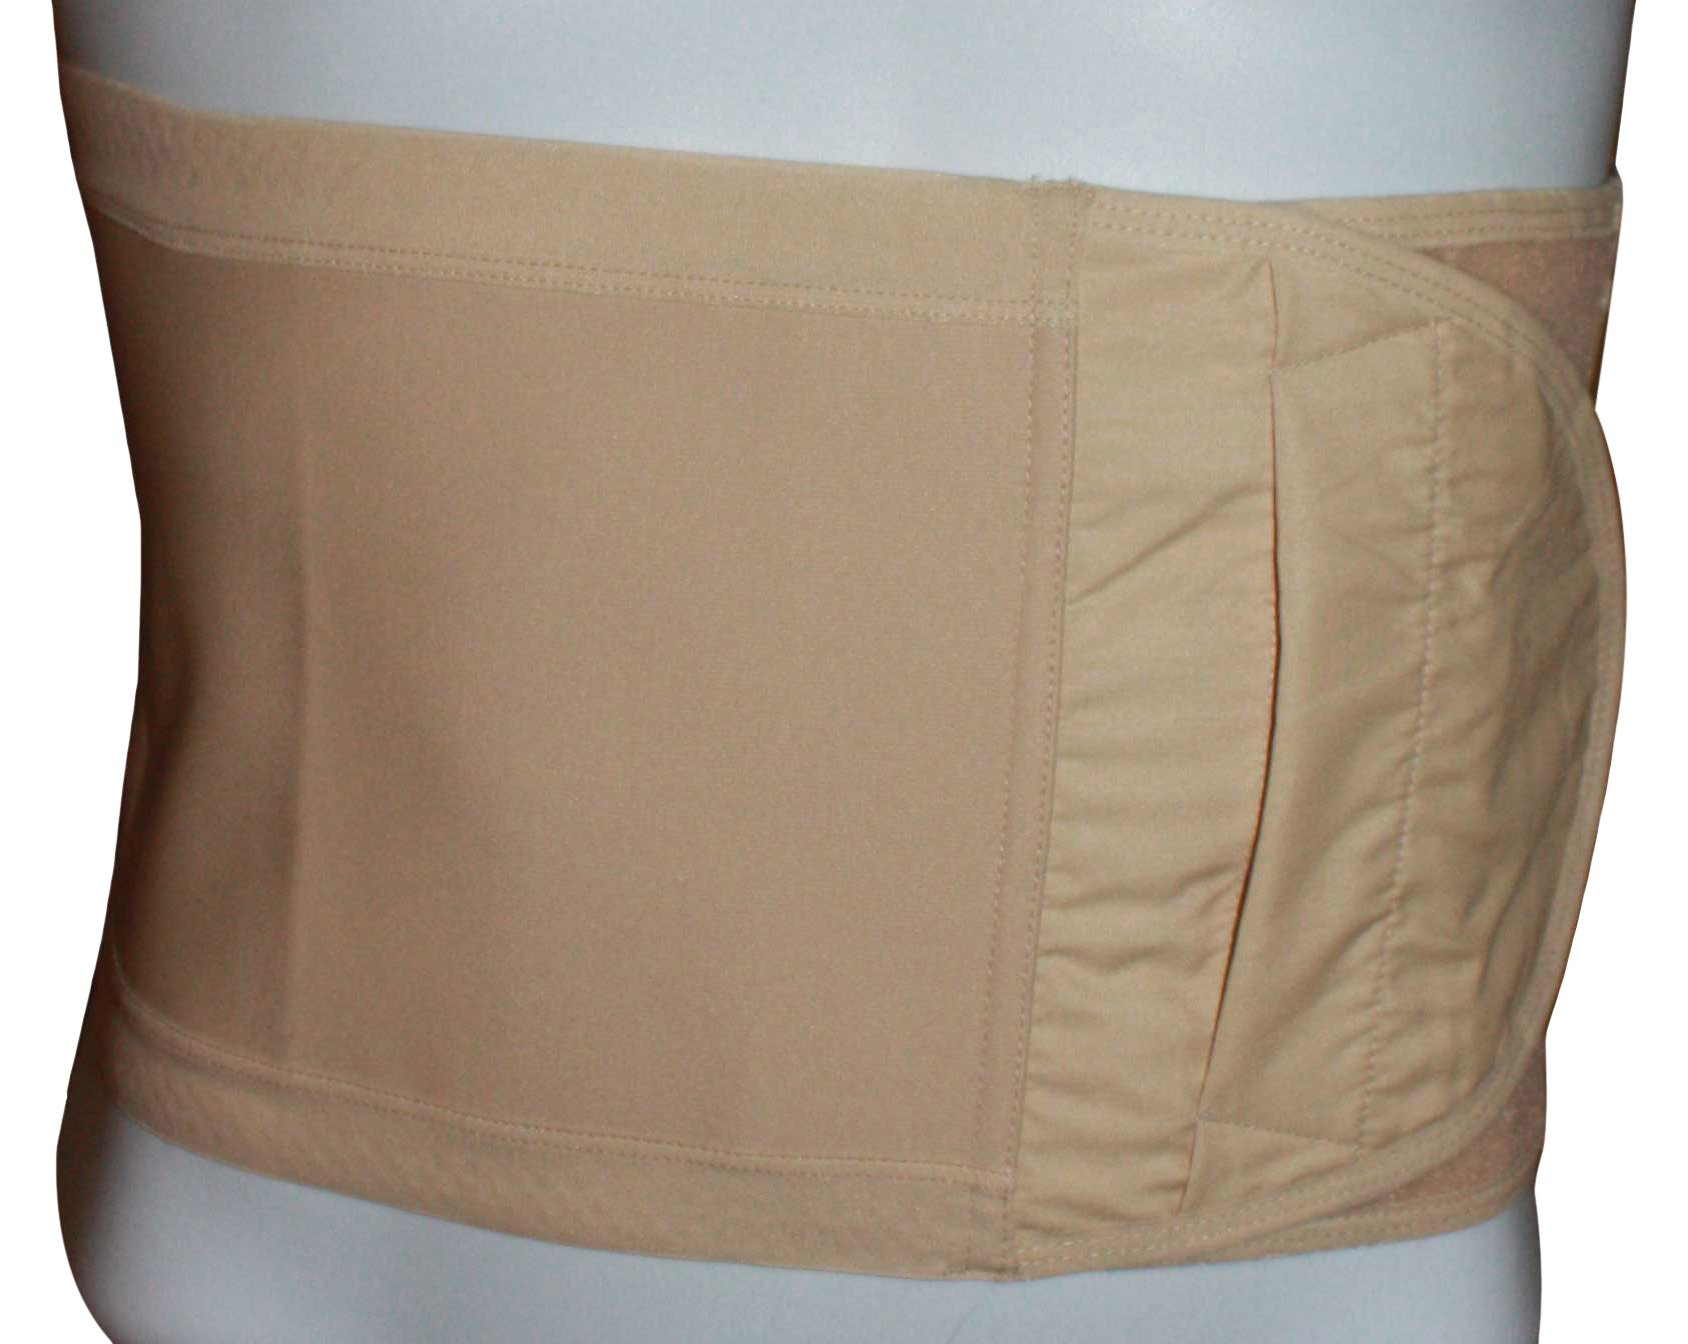 Safe n' Simple Hernia Support Belt, 20cm, Beige, X-Small by Safe n' Simple